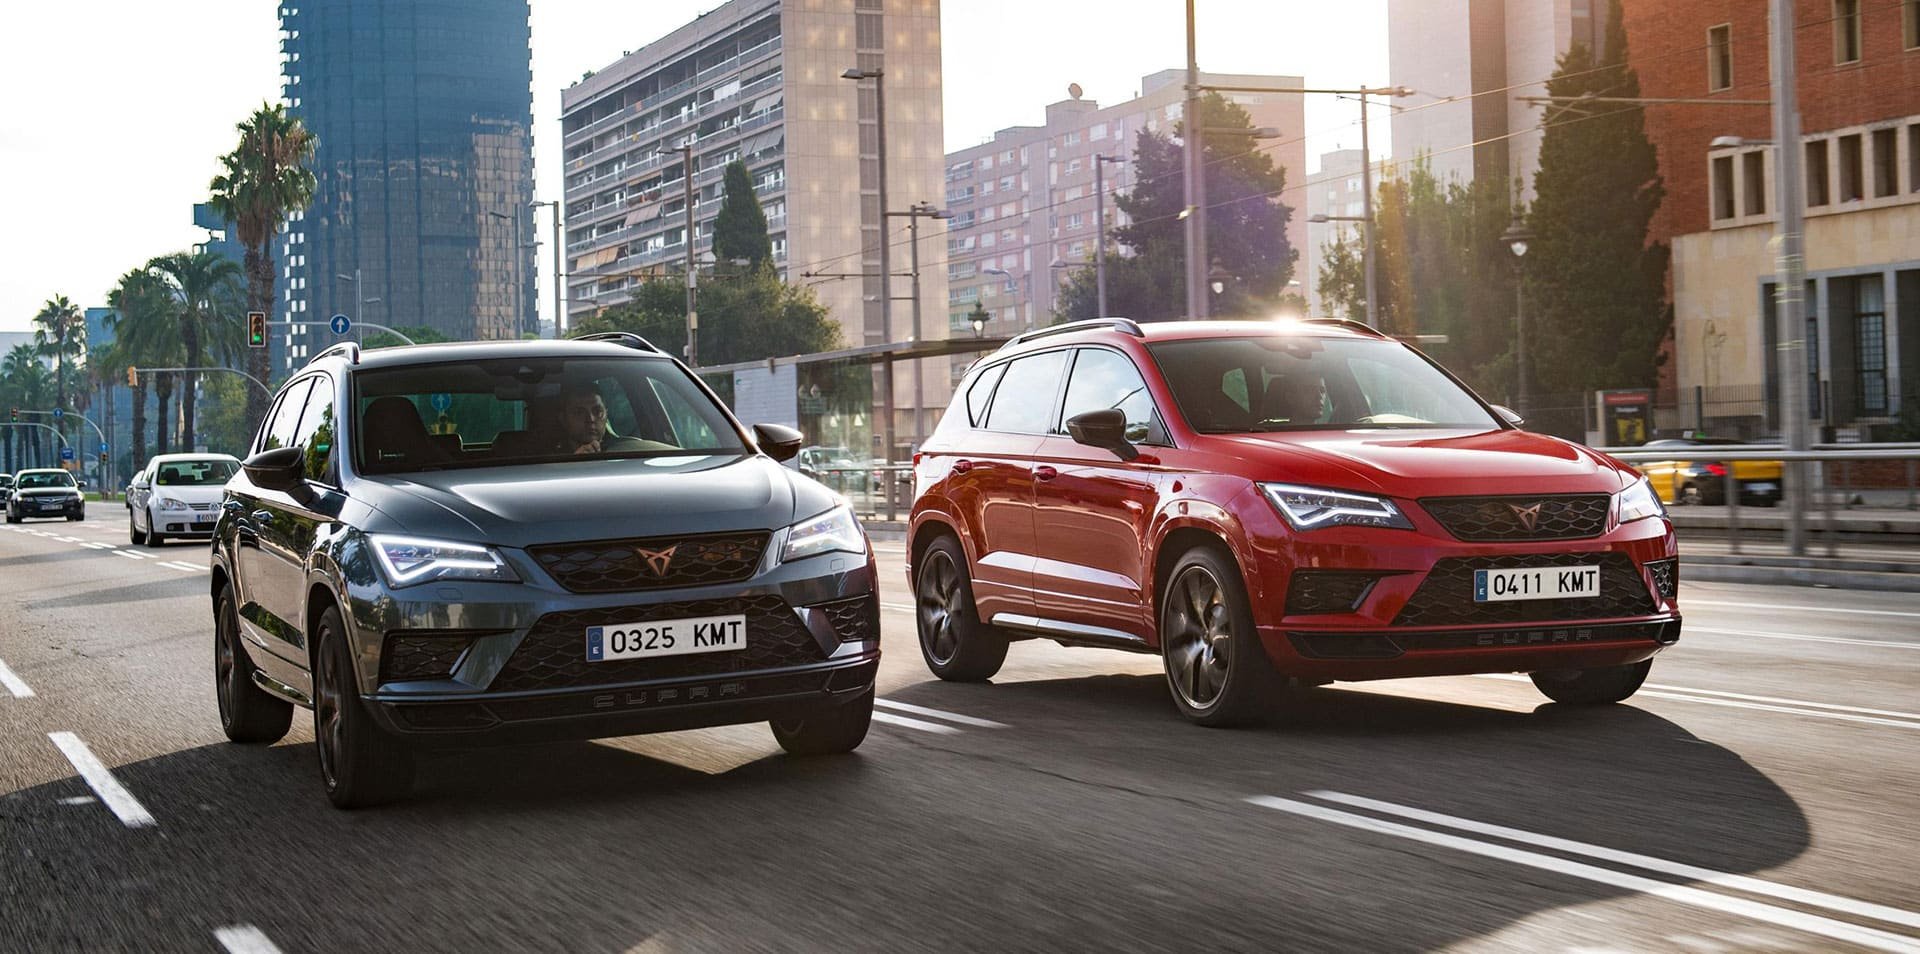 SEAT Ateca Cupra hot SUV to cost from £35.9K 1